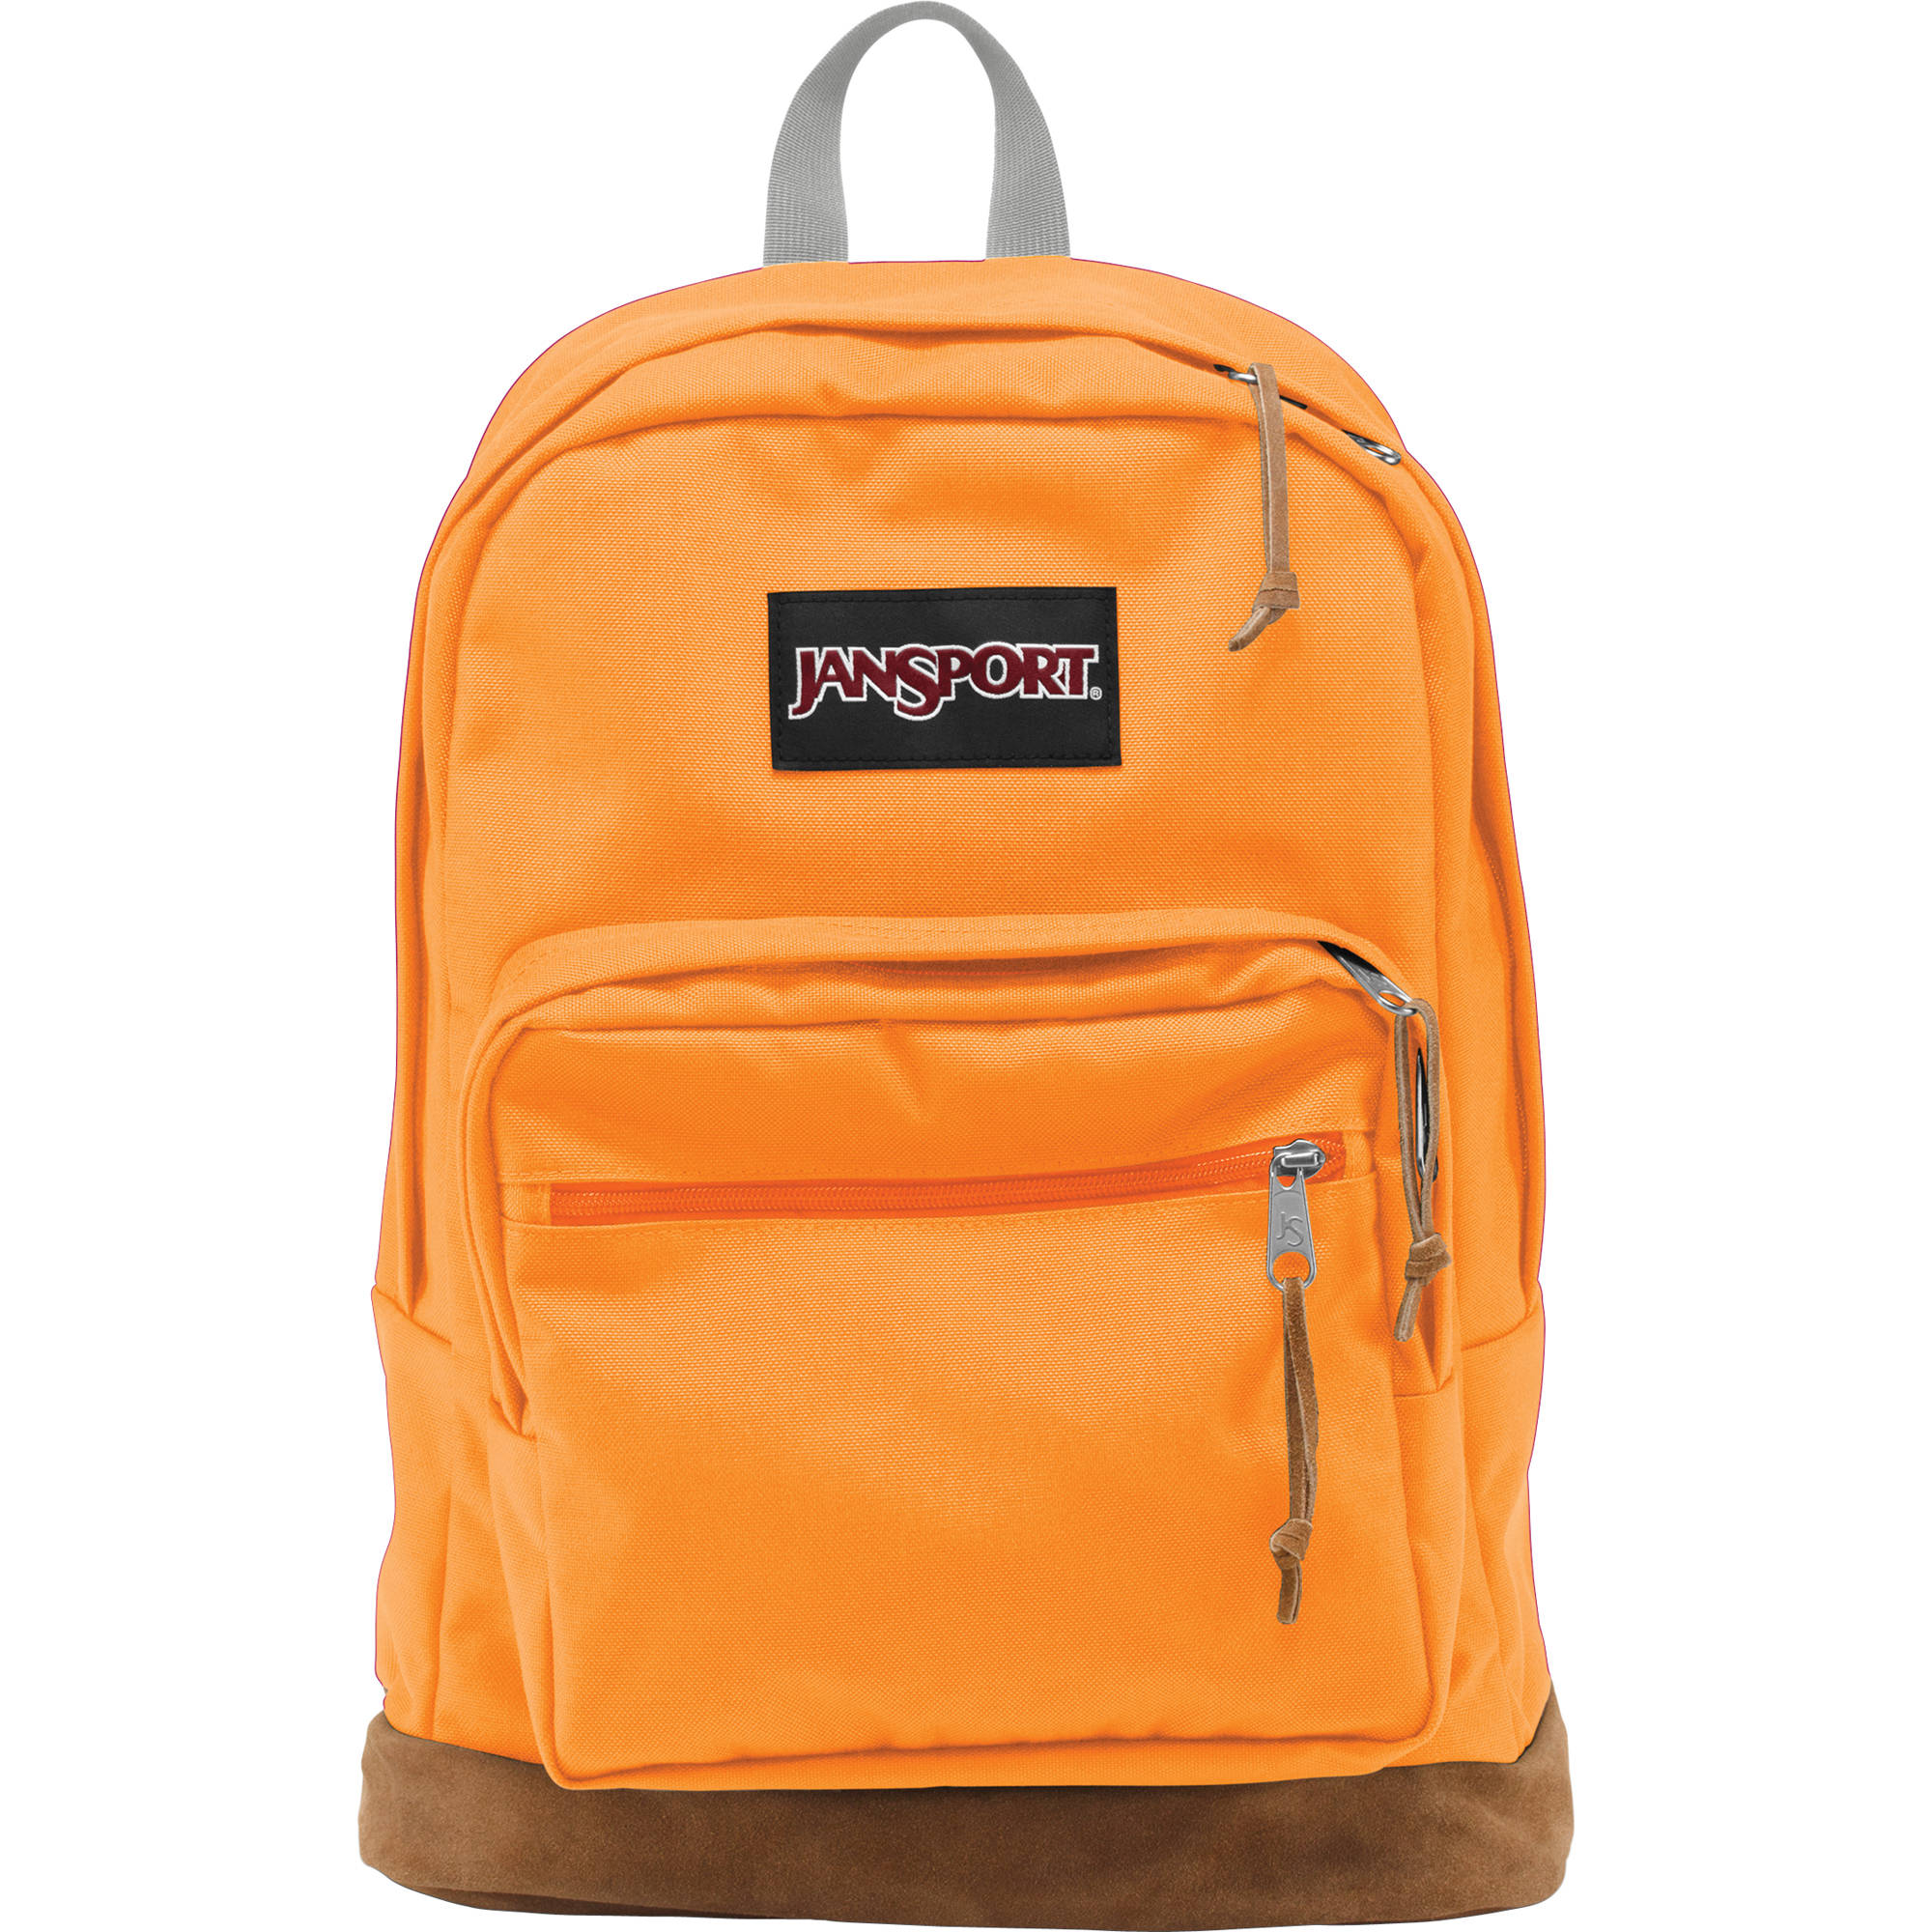 Shop Backpacks, Bookbags, and bags at carlnoterva.ml Journeys carries the hottest brands and latest styles from Jansport, The North Face, adidas. Vans, Fjallraven Kanken and Converse. Shop Backpacks Now!